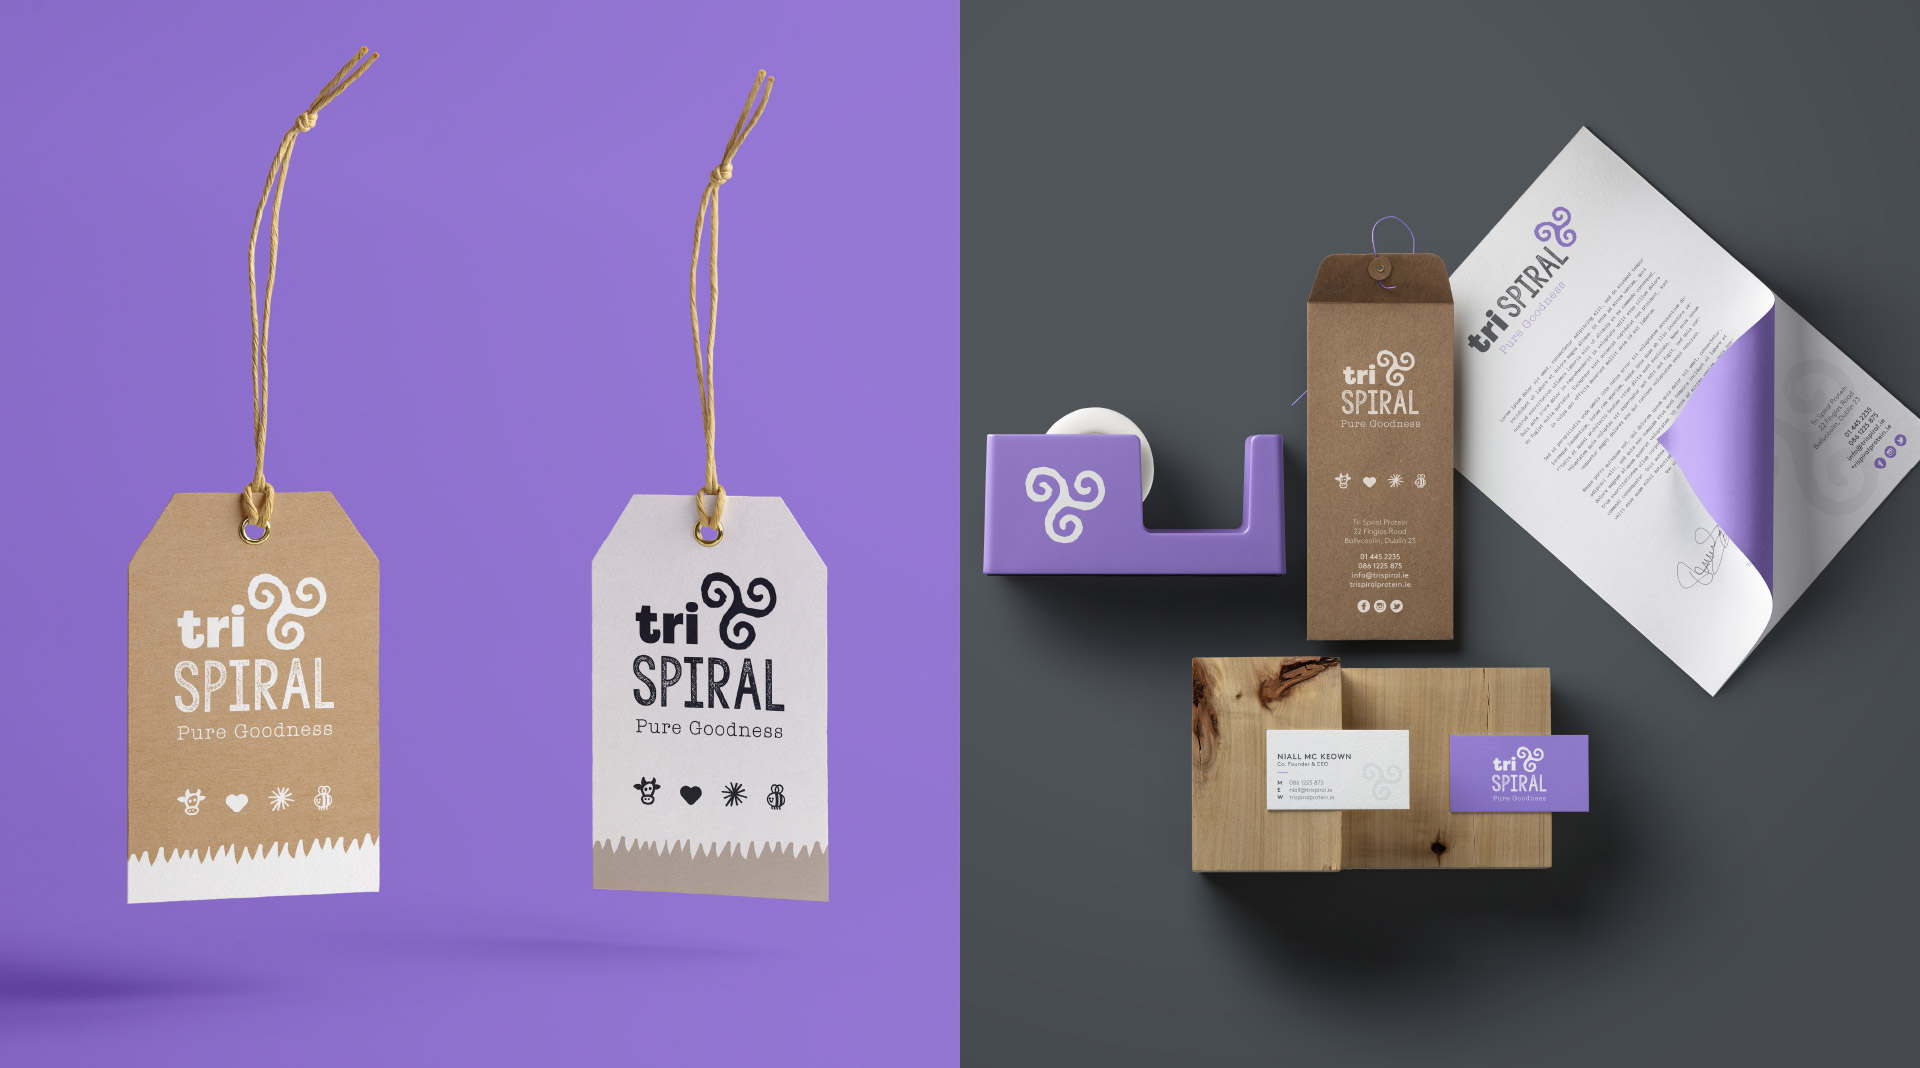 TriSpiral tags and stationery design